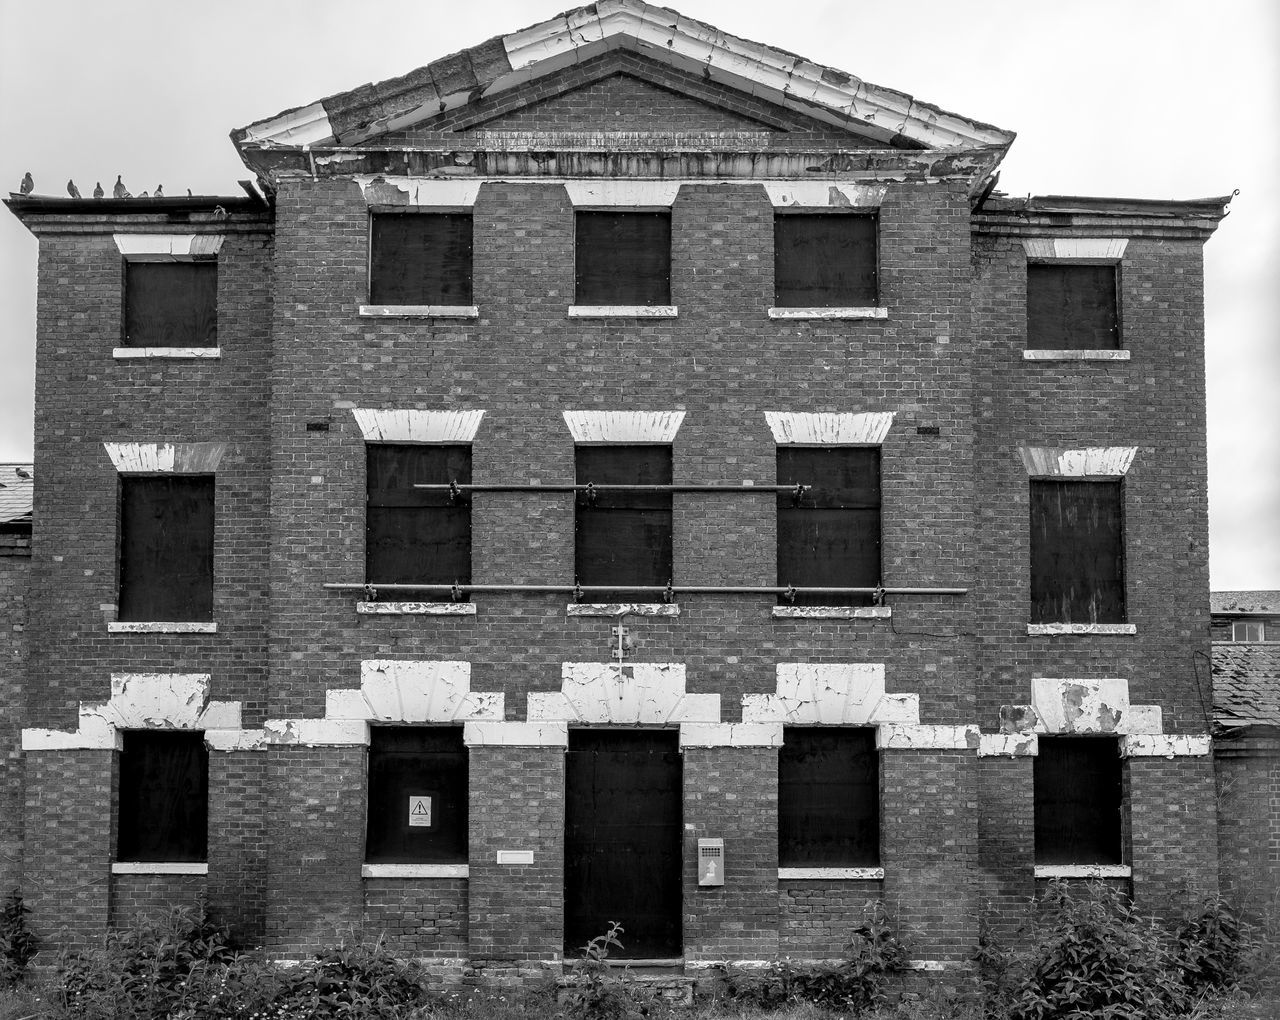 Saint Edmund's Hospital, Wellingborough Road, Northampton Workhouse Hospital Wellingborough Road Northampton Urban Monochrome Fujfilmxt10 Architecture Façade Black And White Derelict Decay